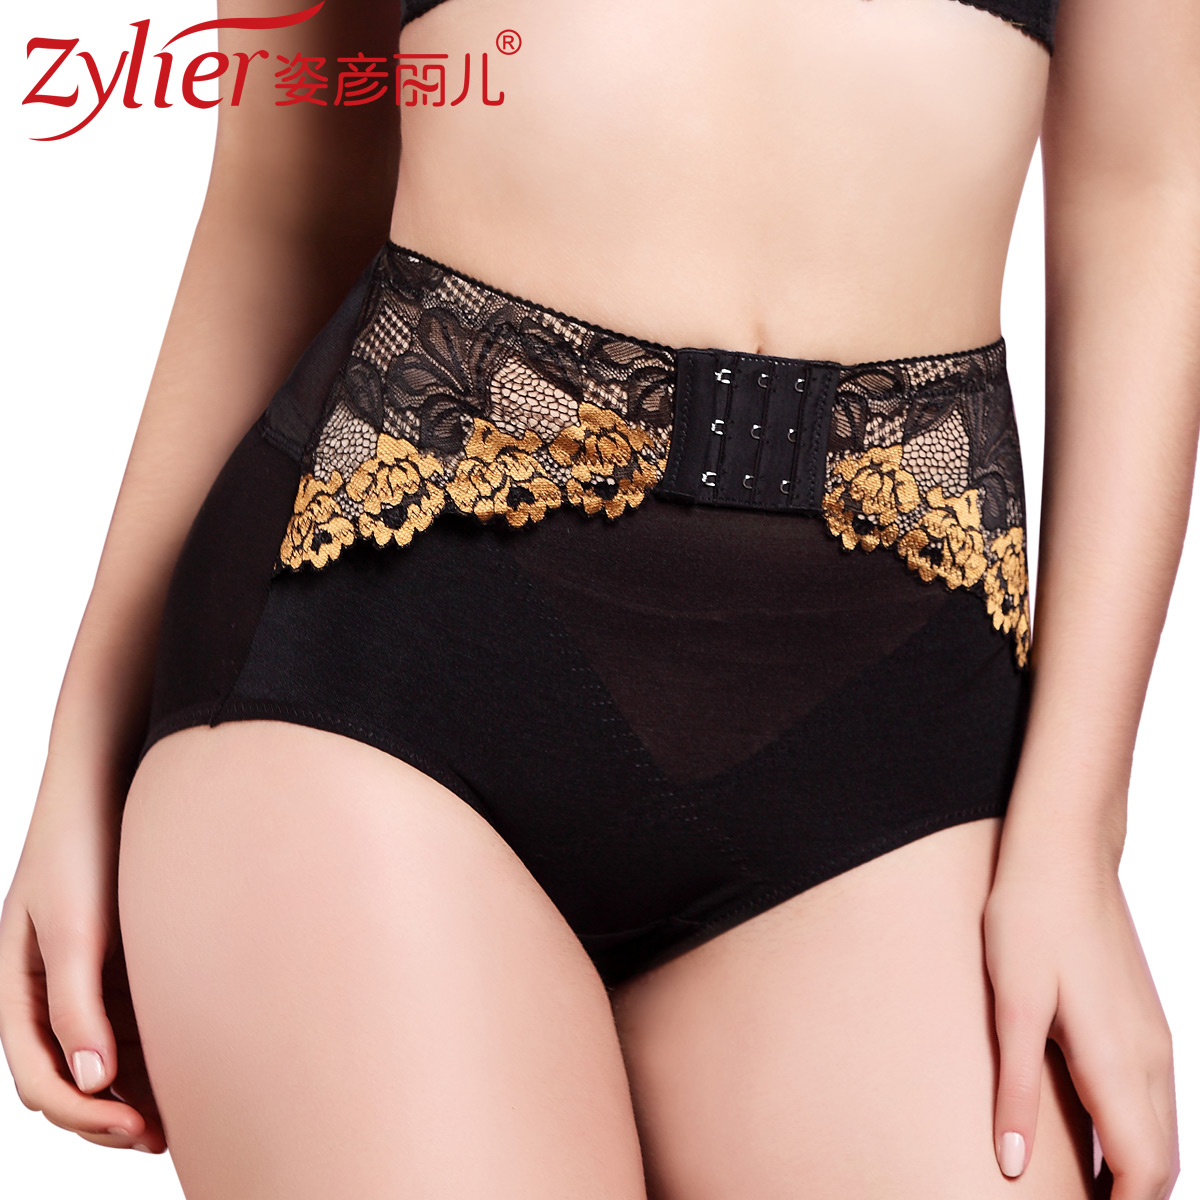 Double golden rose 2013 abdomen drawing mid waist butt-lifting body shaping panties sk132